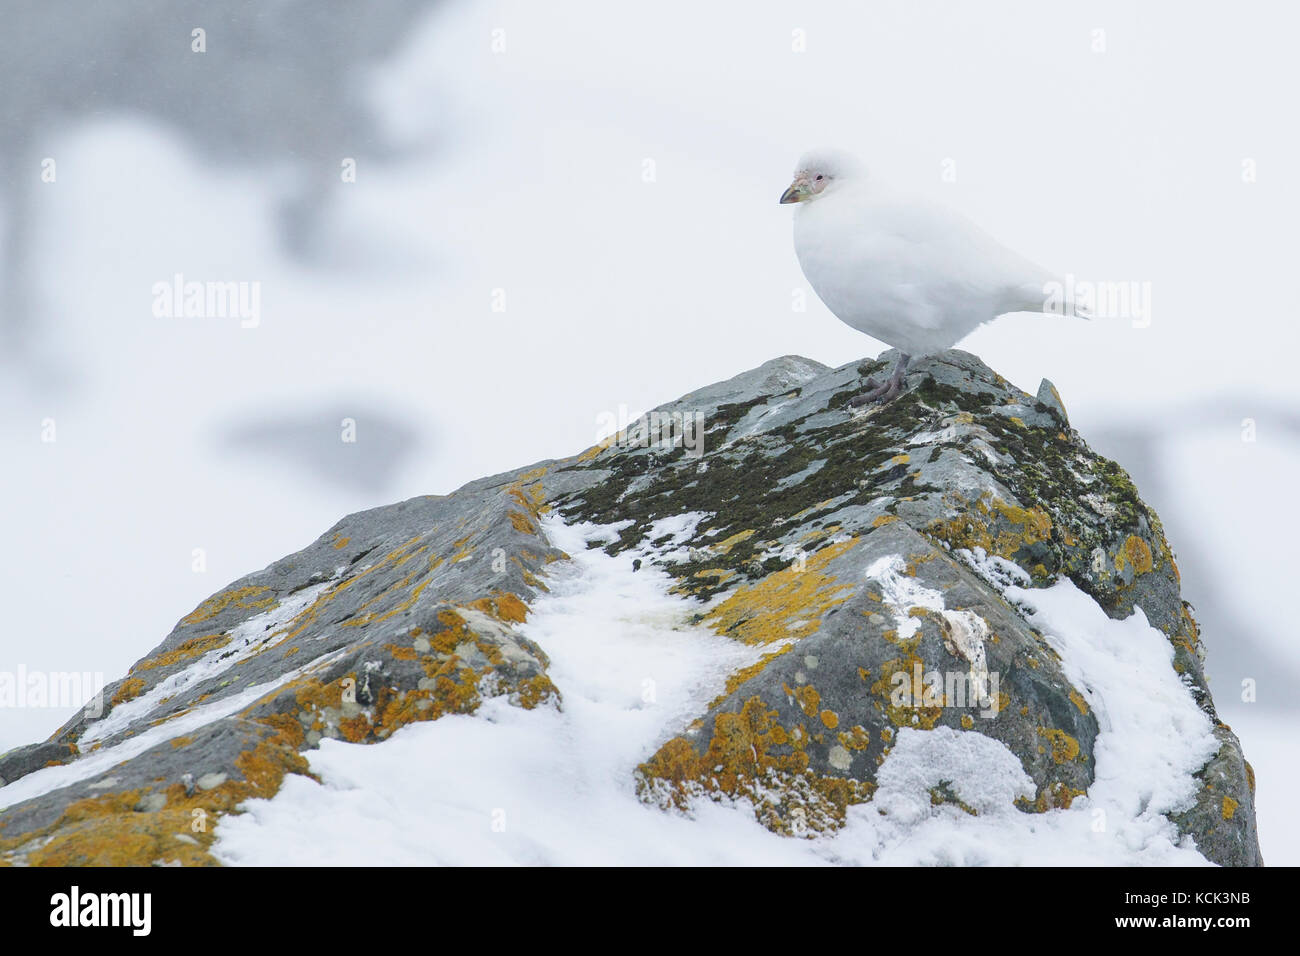 Snowy Sheathbill, Chionis albus, South Georgia Island. - Stock Image